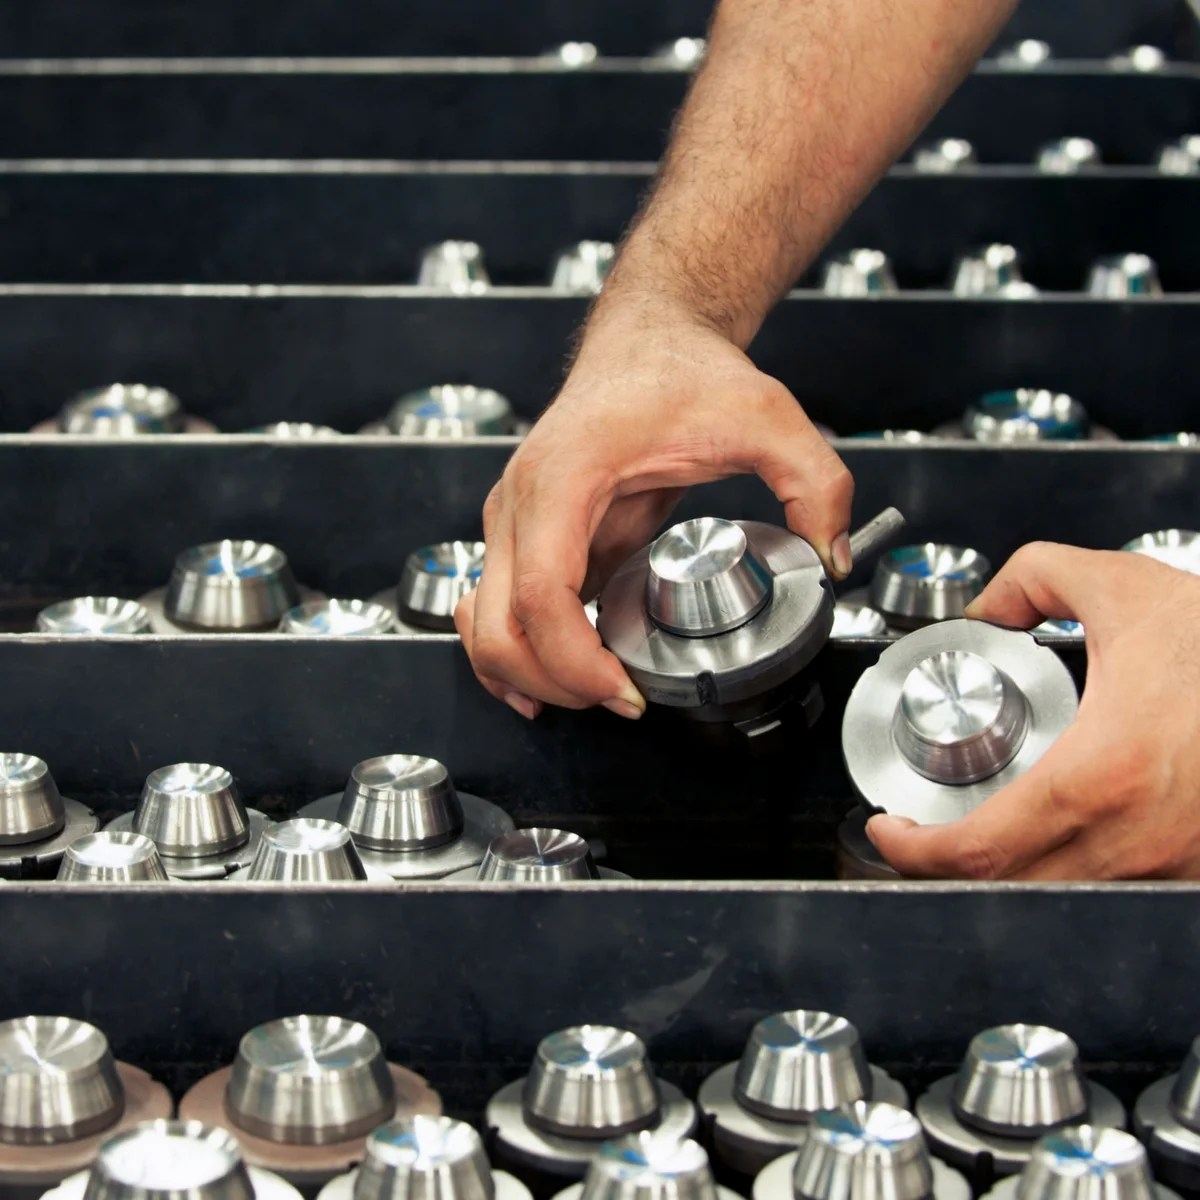 How To Implement Quality Control In Your Manufacturing